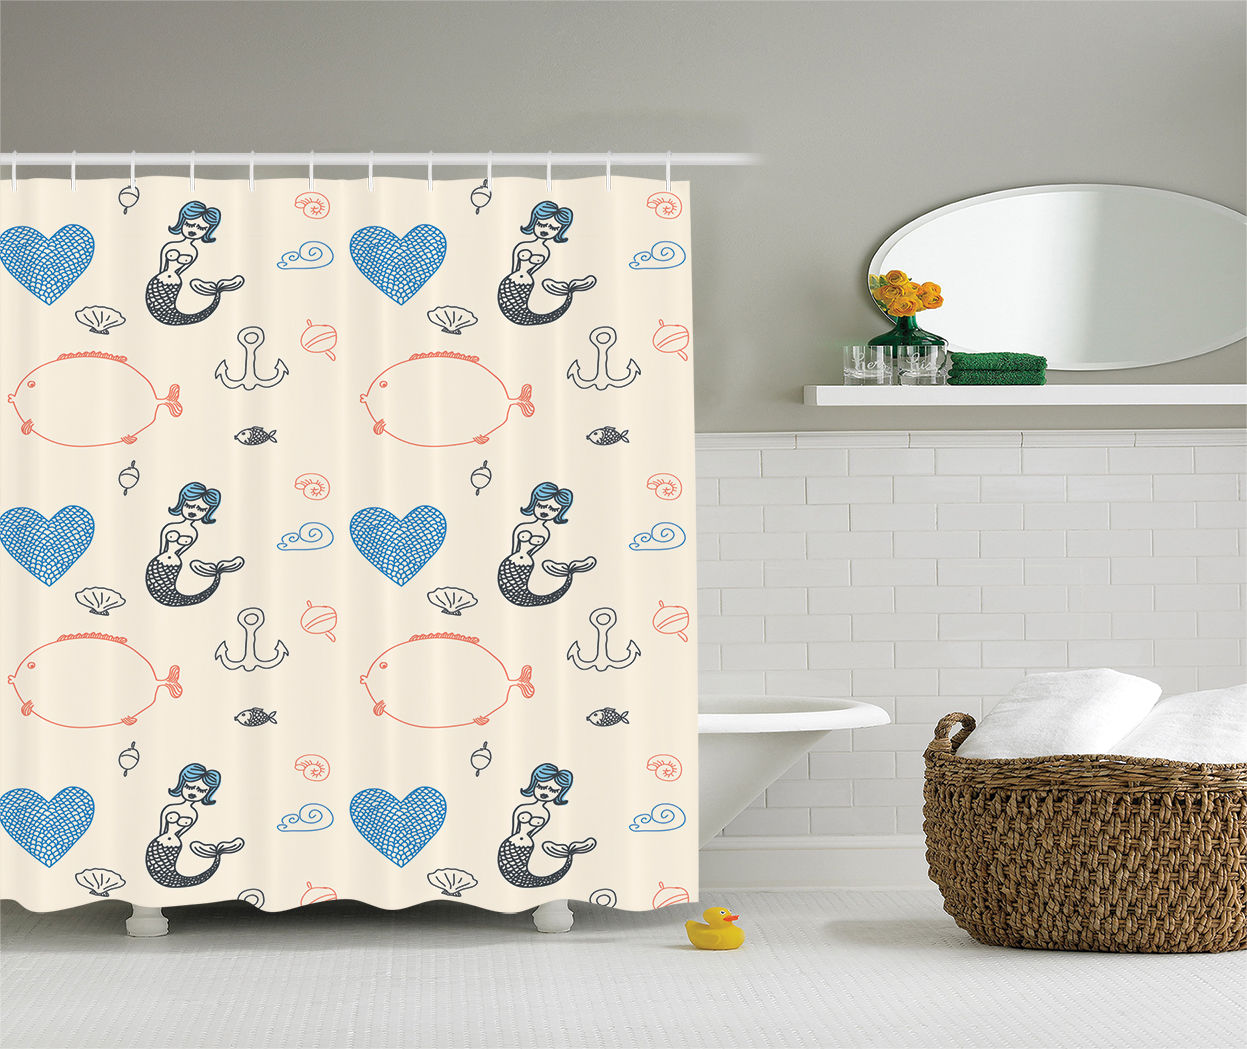 Exceptionnel Kids Decor Mermaid Balloon Fish Hearts Sea Objects, Bathroom Accessories,  69W X 70L Inches, By Ambesonne